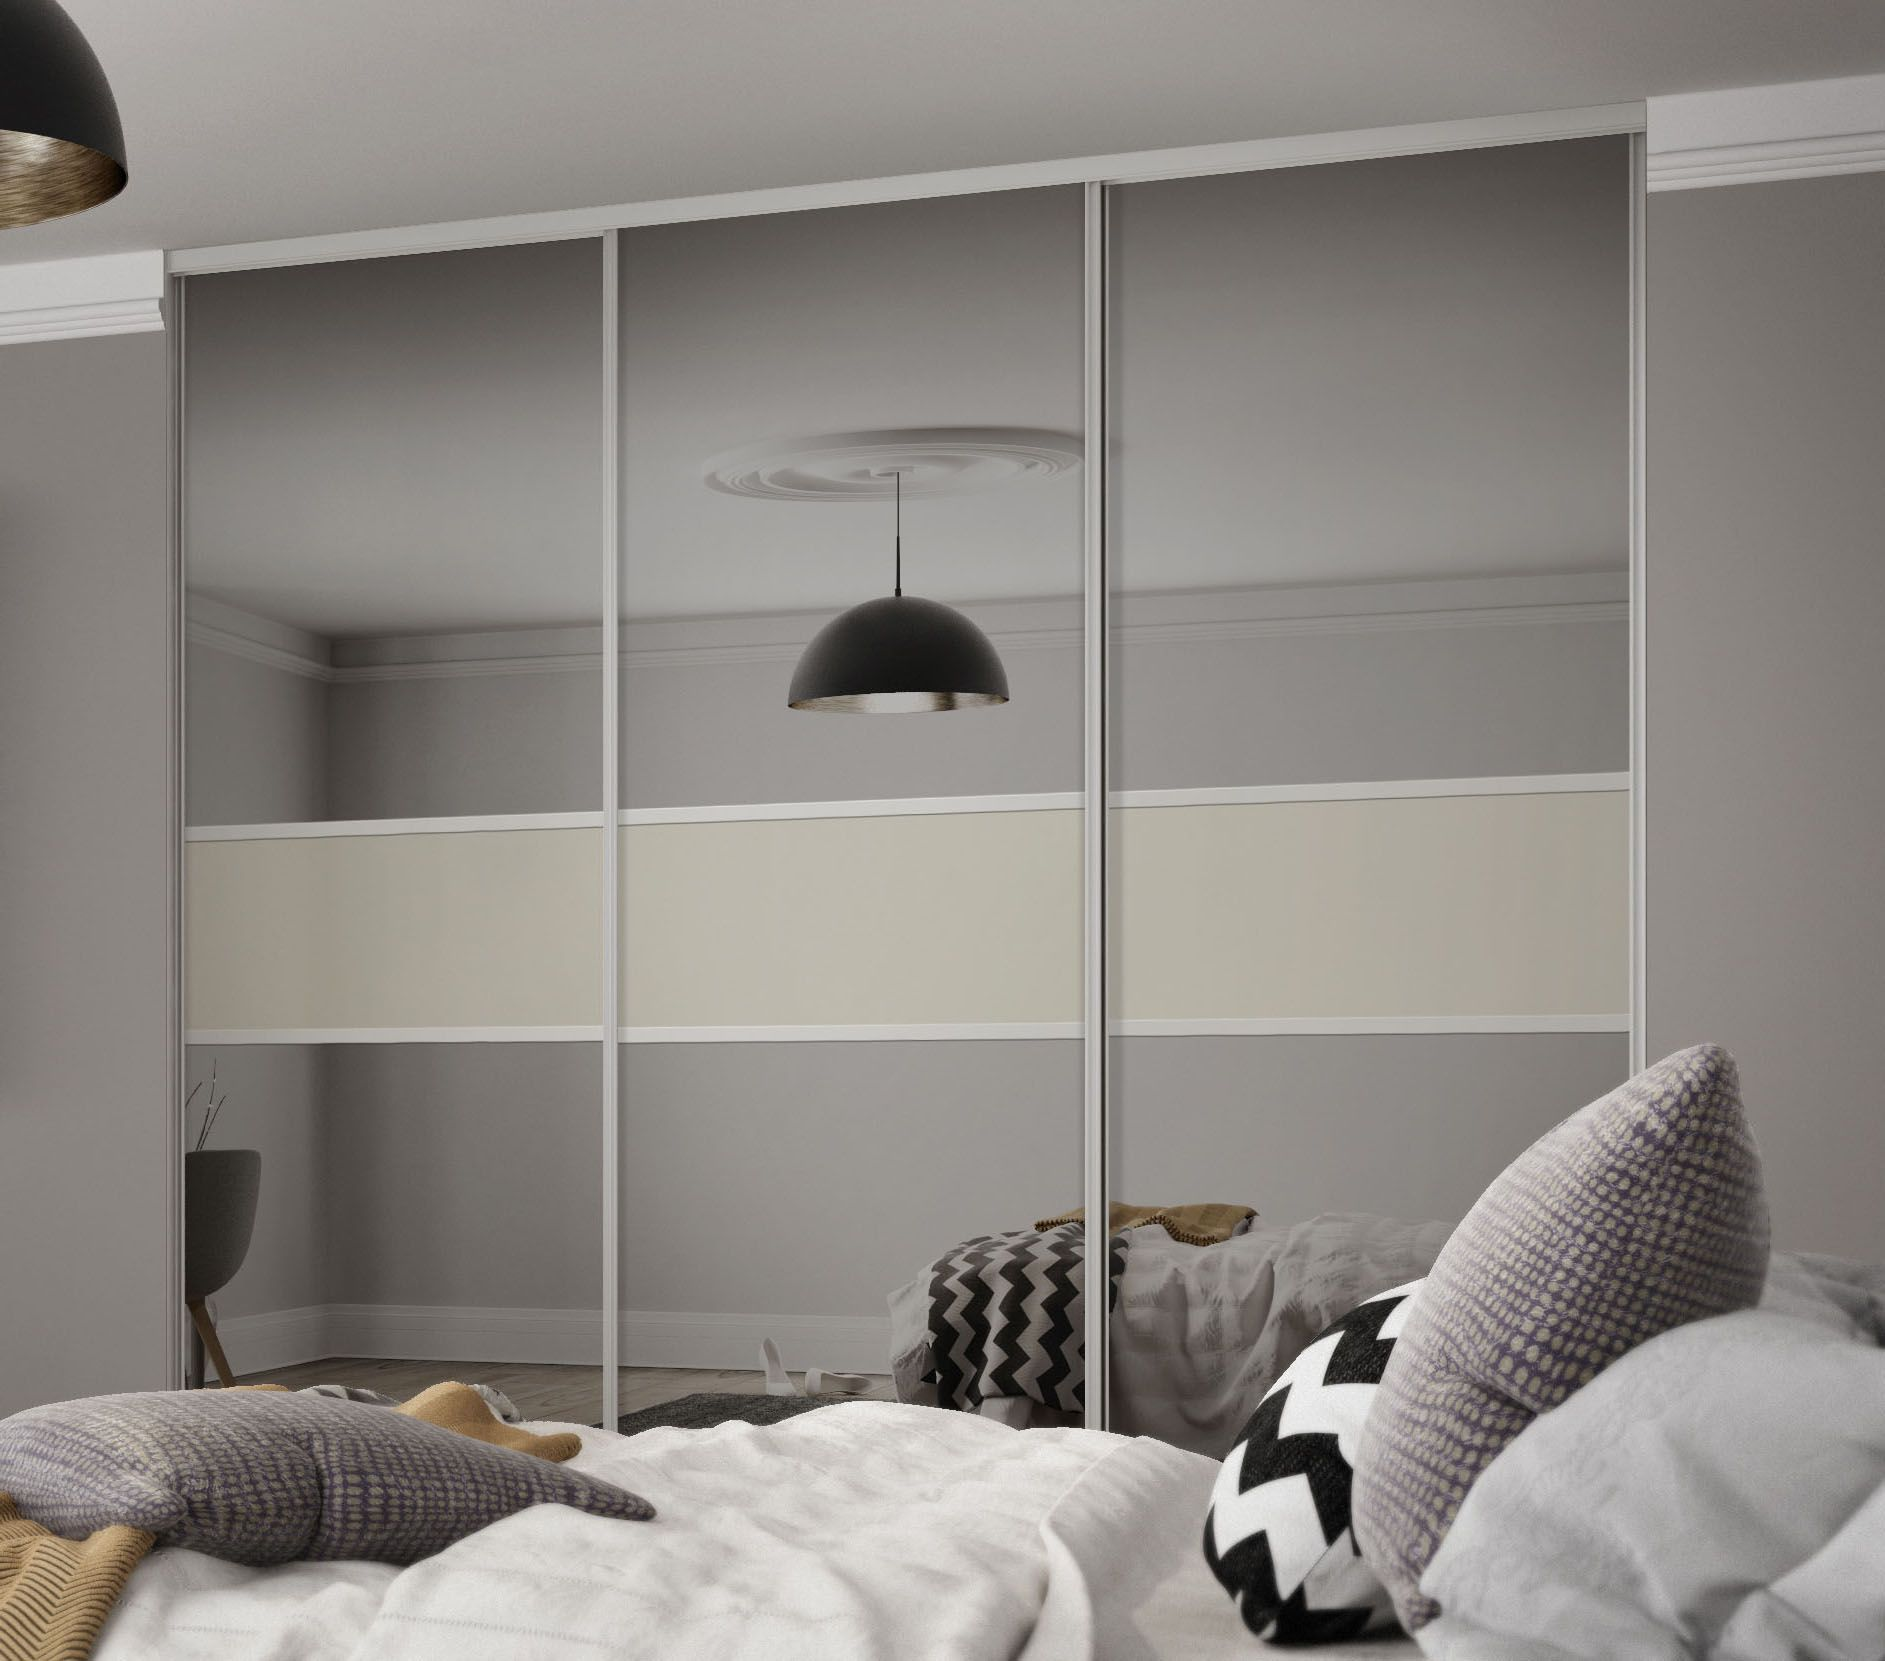 Made to measure sliding wardrobes glass sliding doors mirror - Classic 3 Panel Fineline Sliding Wardrobe Doors In Grey Mirror And Soft White Glass With Silver